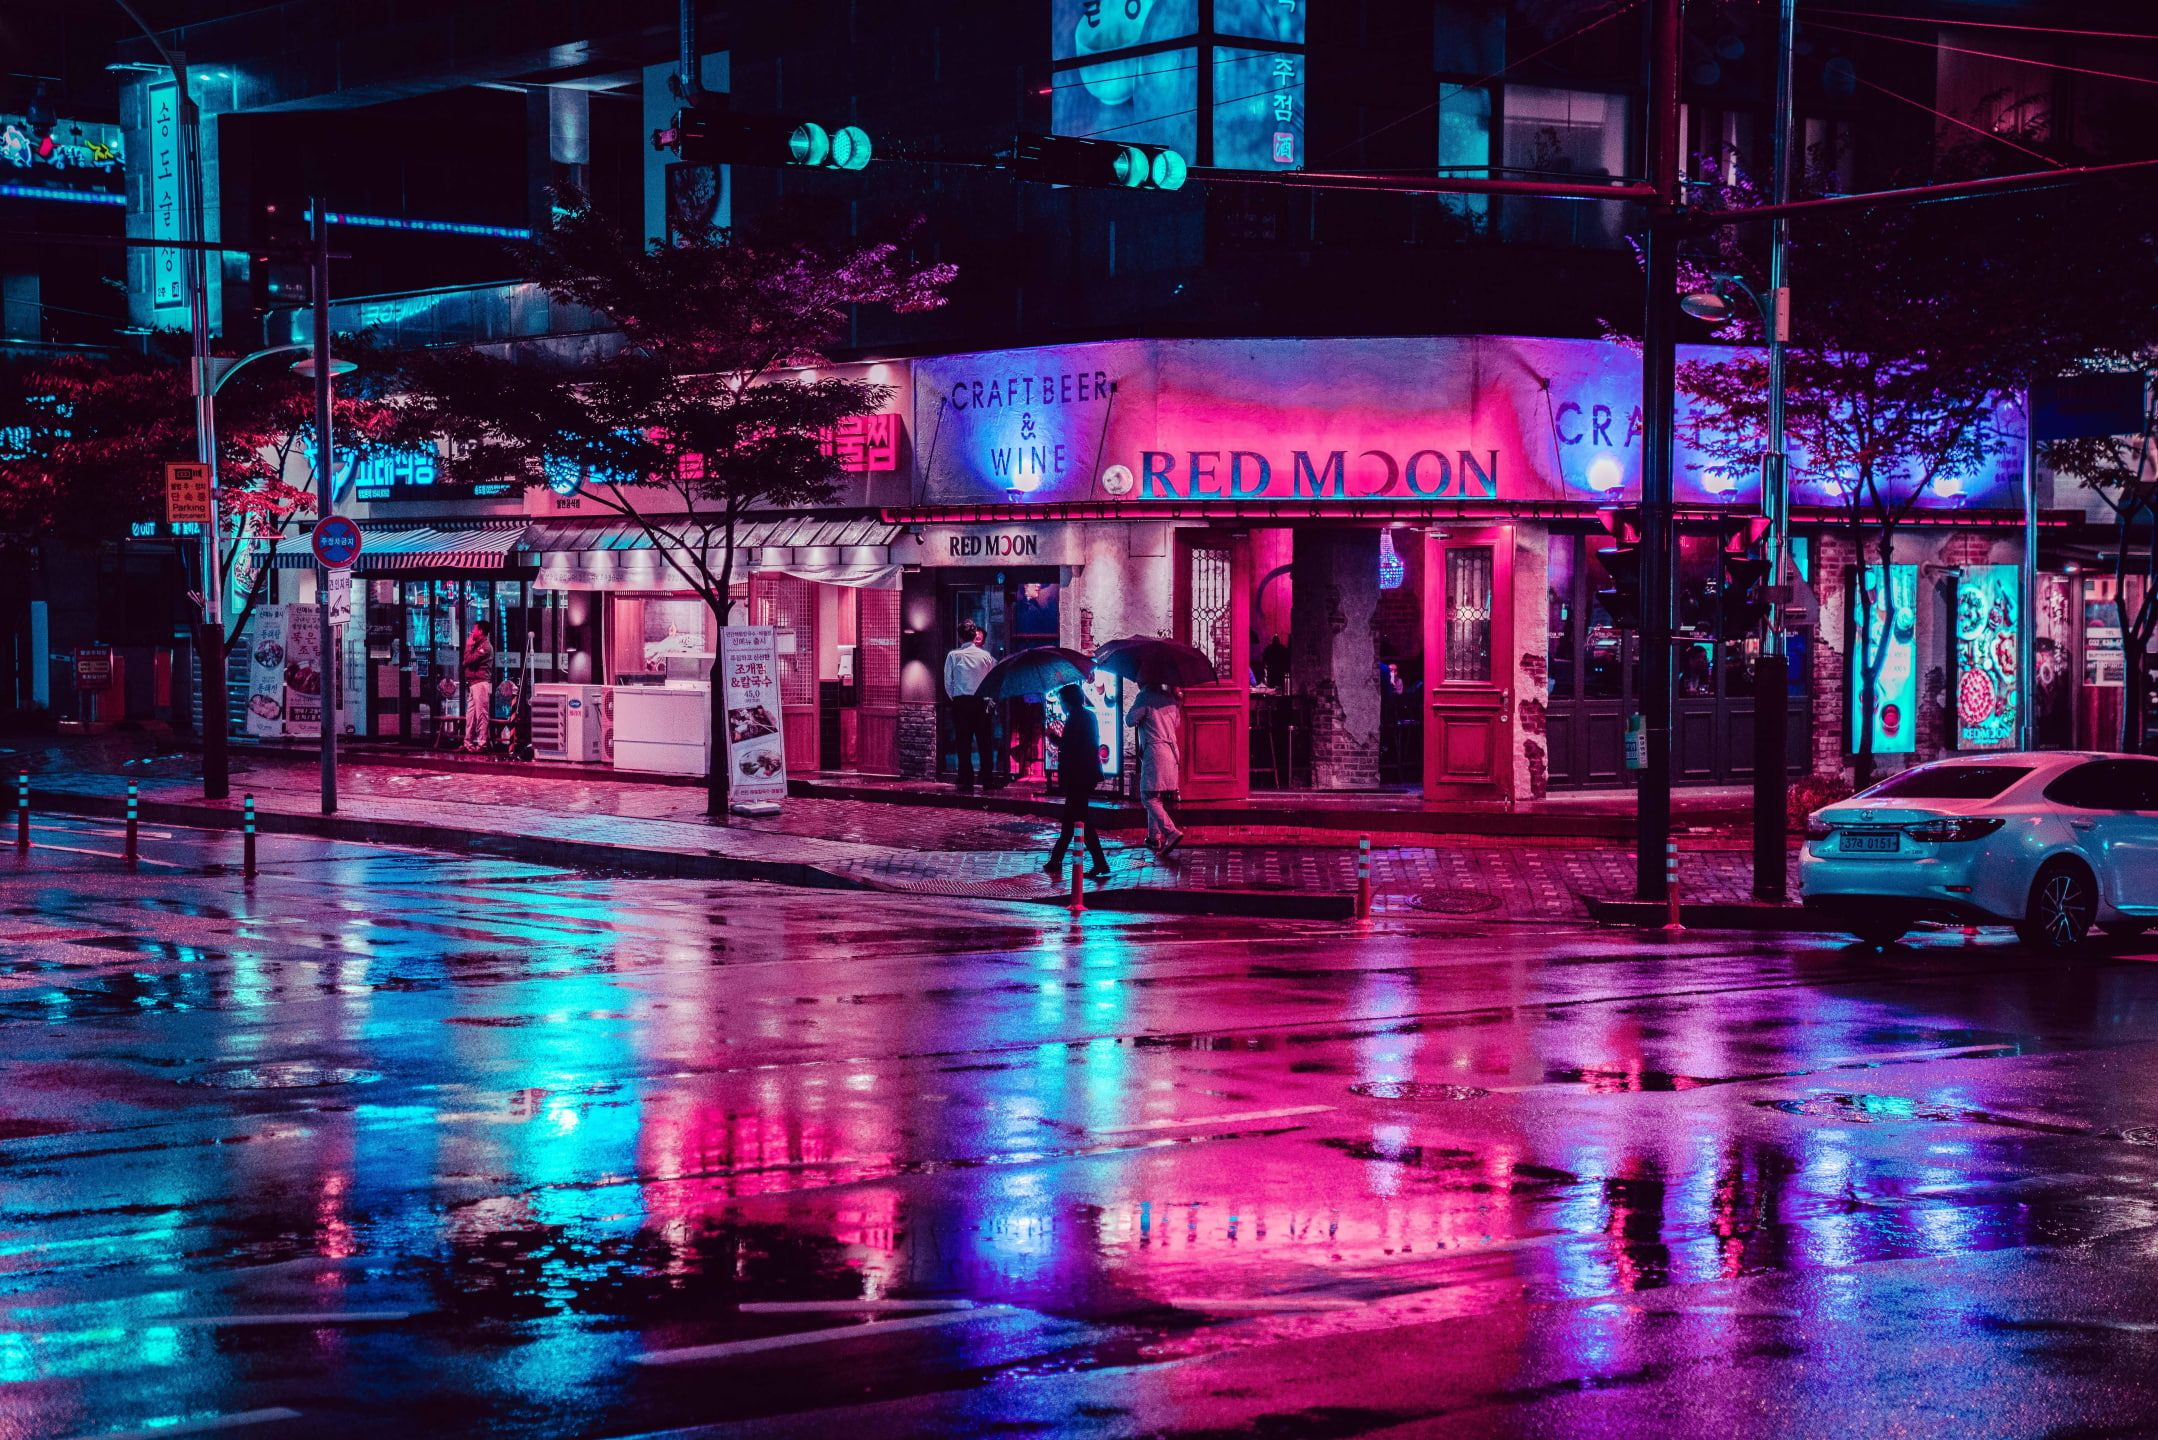 Photography City City Lights Street Night Neon Lights Urban 1080p Wallpaper Hdwallpaper Desktop